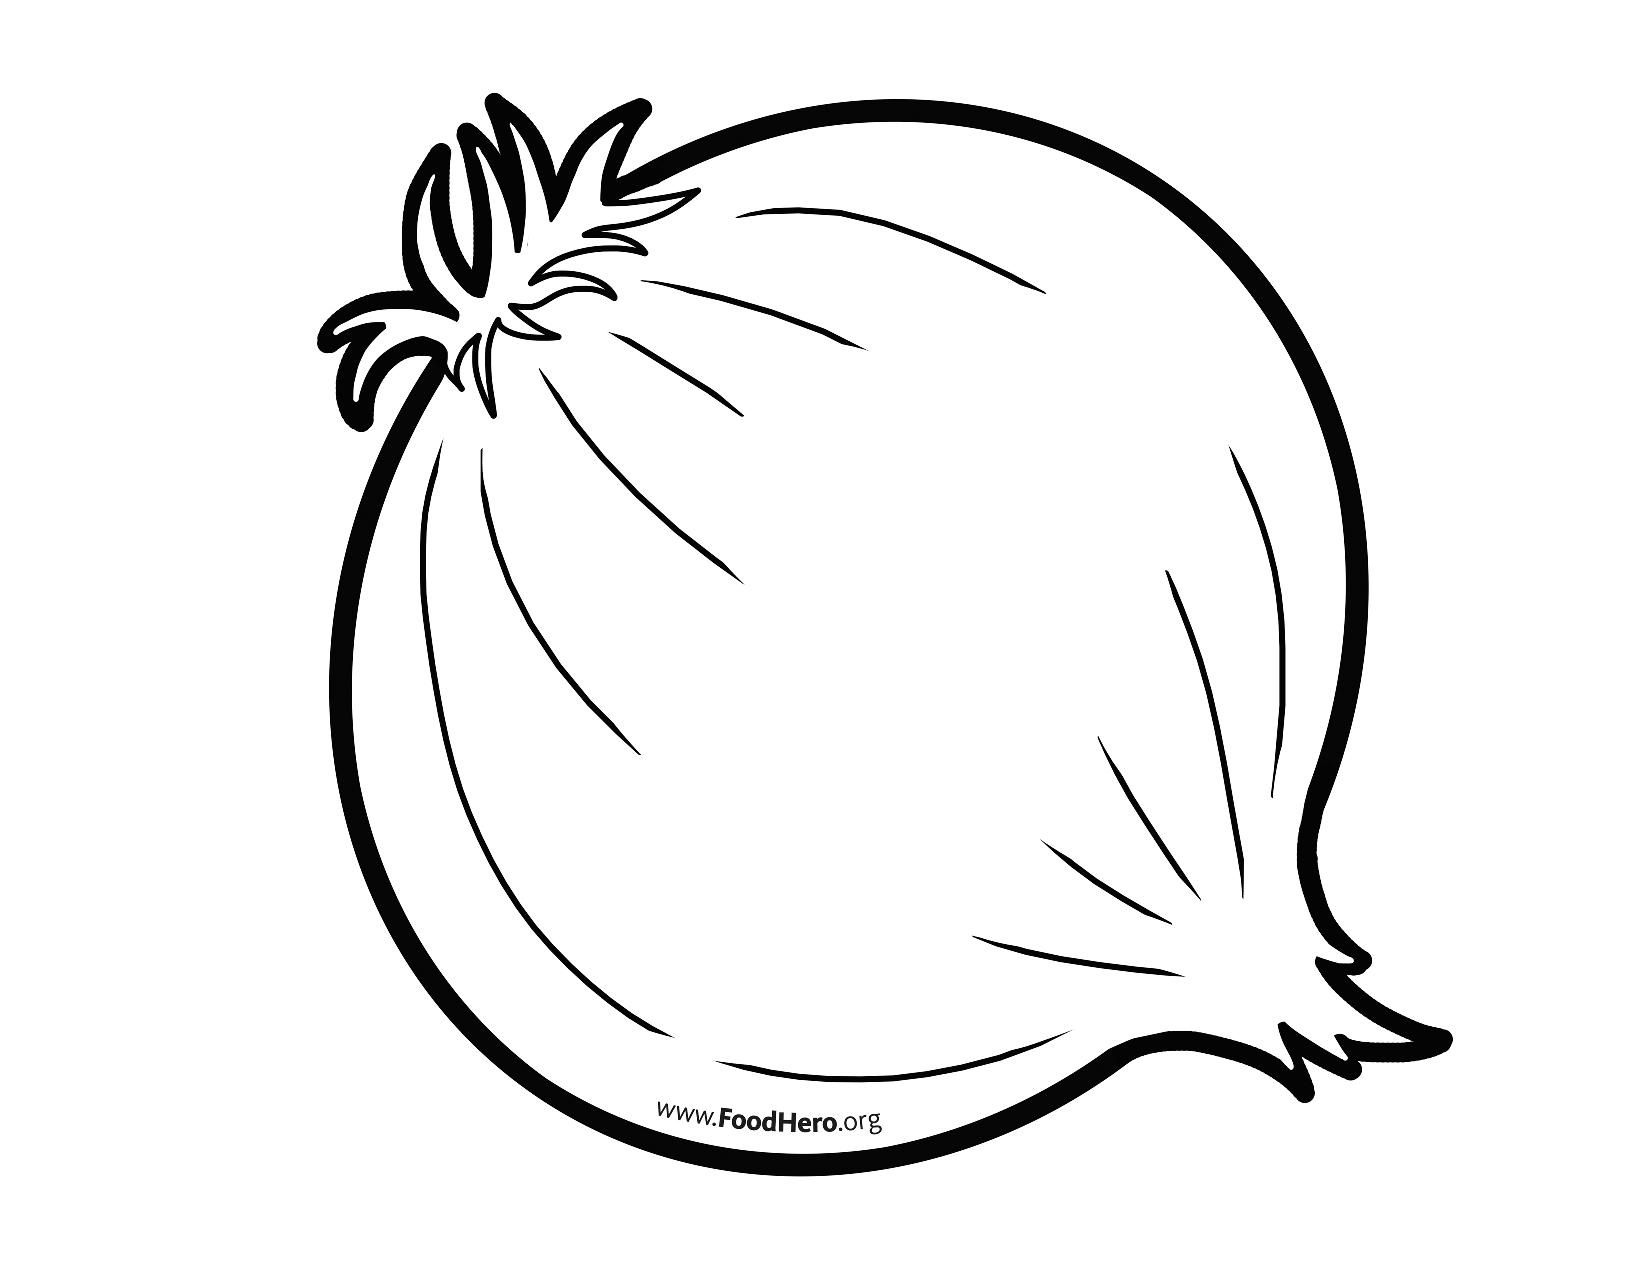 Onion Outline From Foodhero Ingre Nts